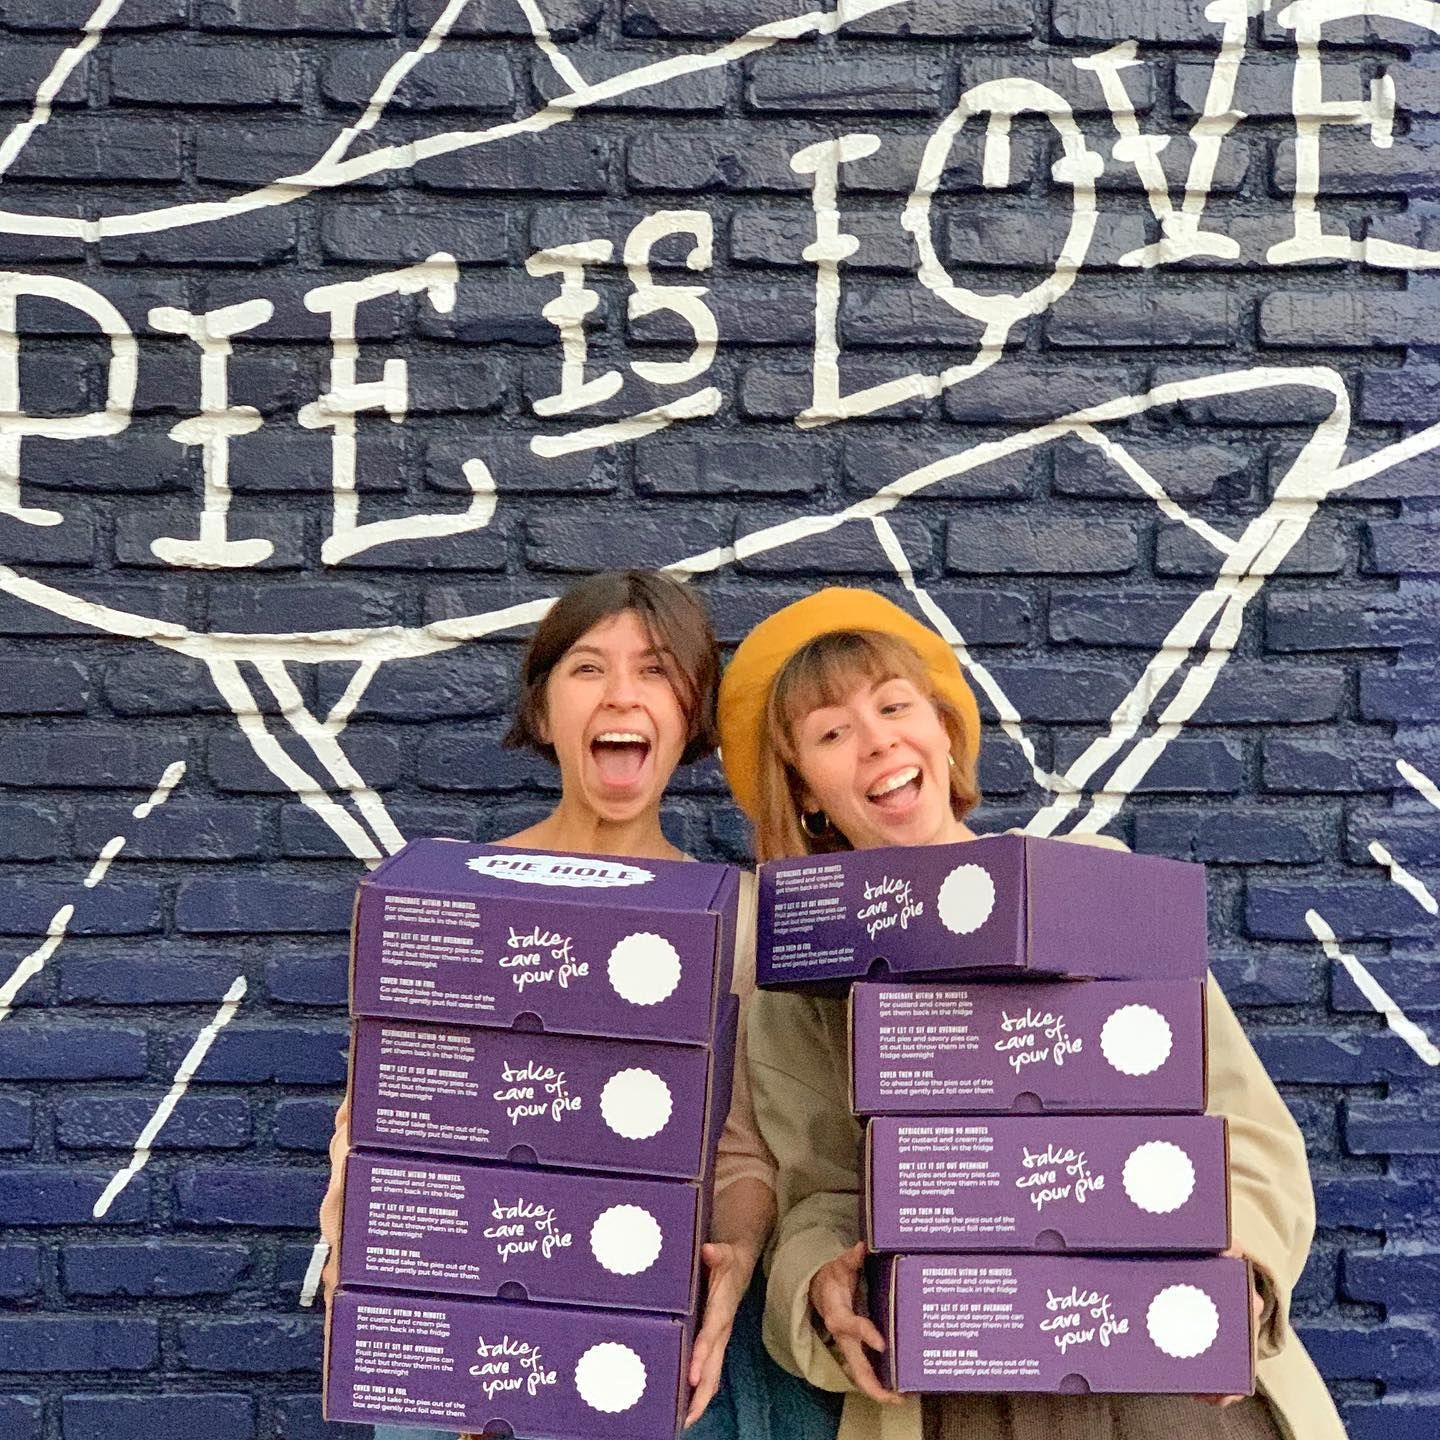 The Pie Hole Teams with Goldbelly to Ship Iconic Pies Nationwide, Witnesses High Demand During Holiday Season